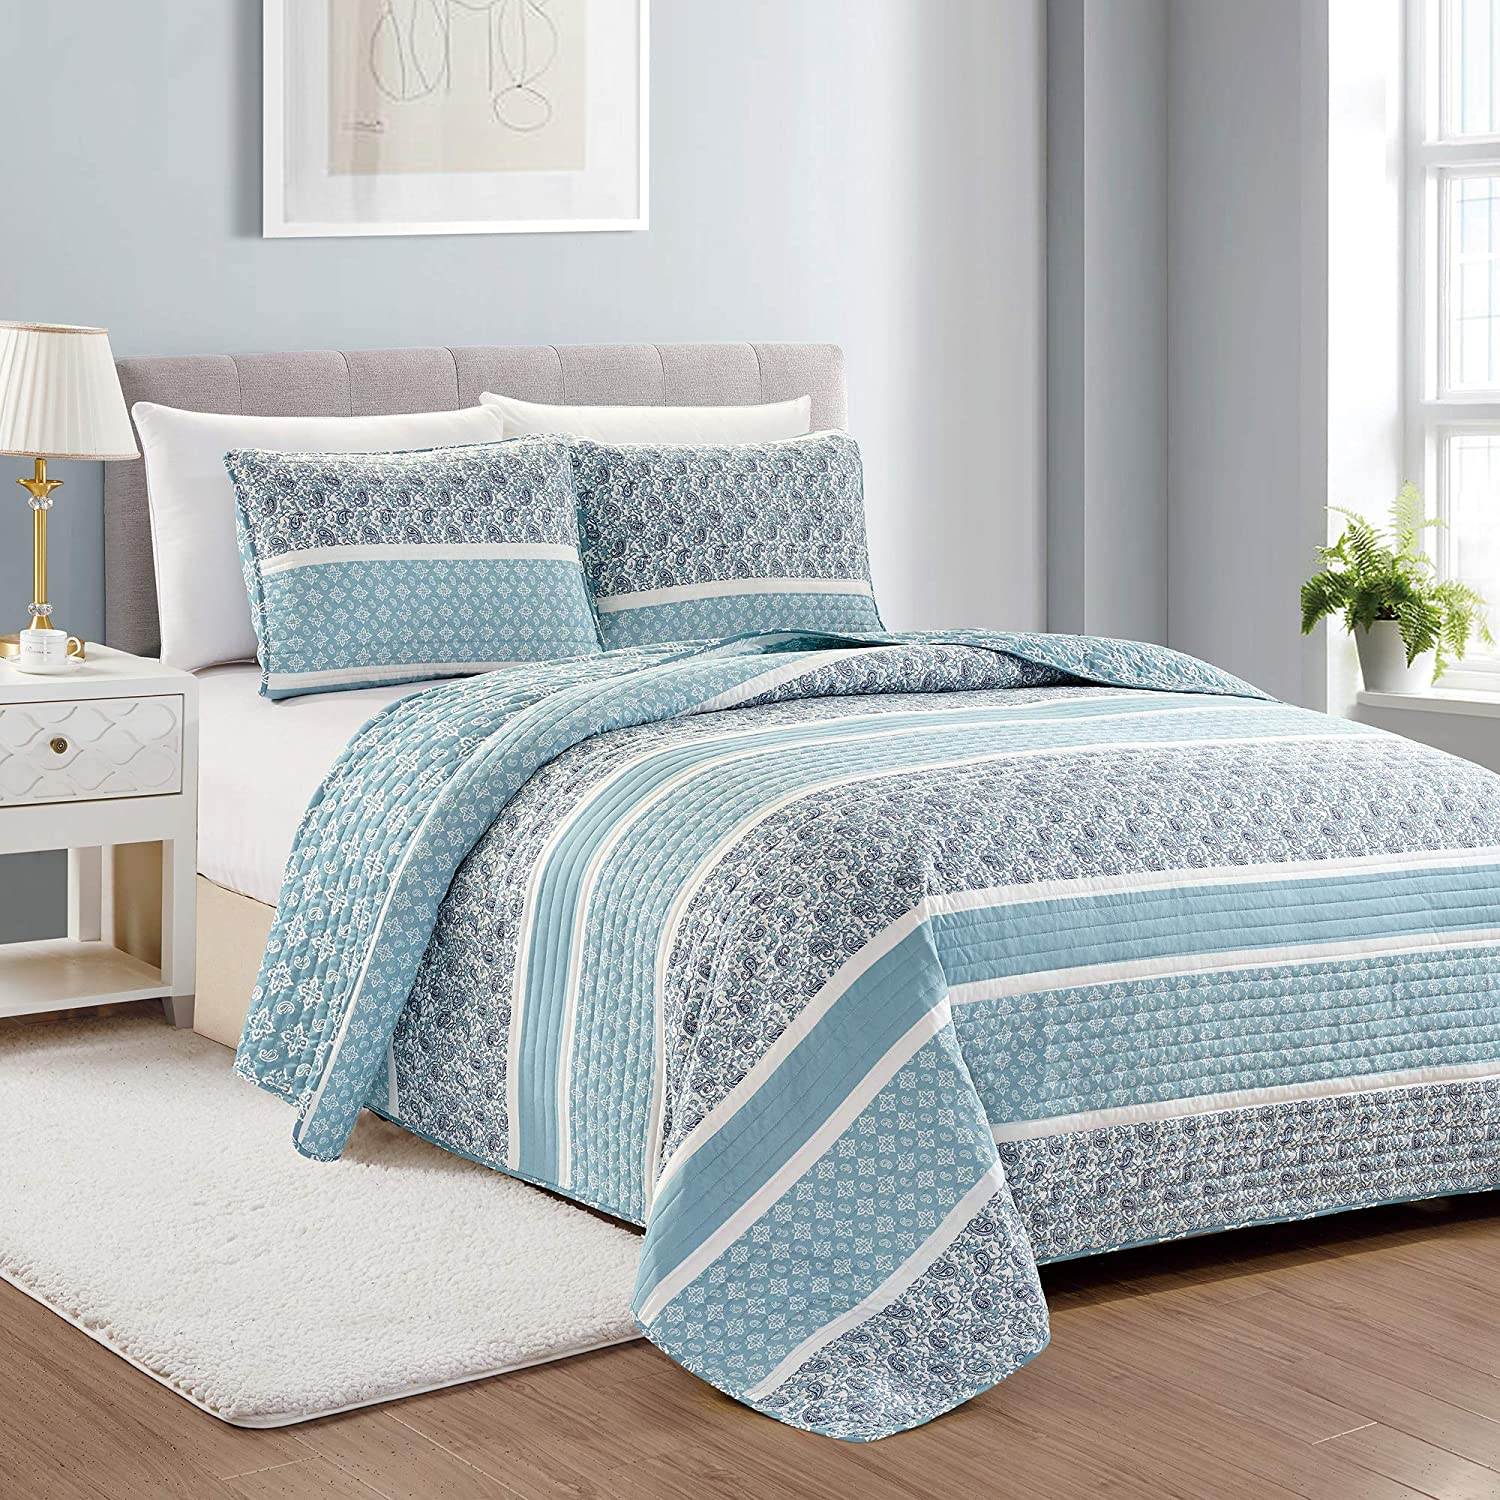 Great Bay Home Reversible Paisley Striped Bedspread. Full/Queen Size Quilt with 2 Shams. 3-Piece Reversible All Season Quilt Set. Sky Blue Quilt Coverlet Bed Set. Kadi Collection.